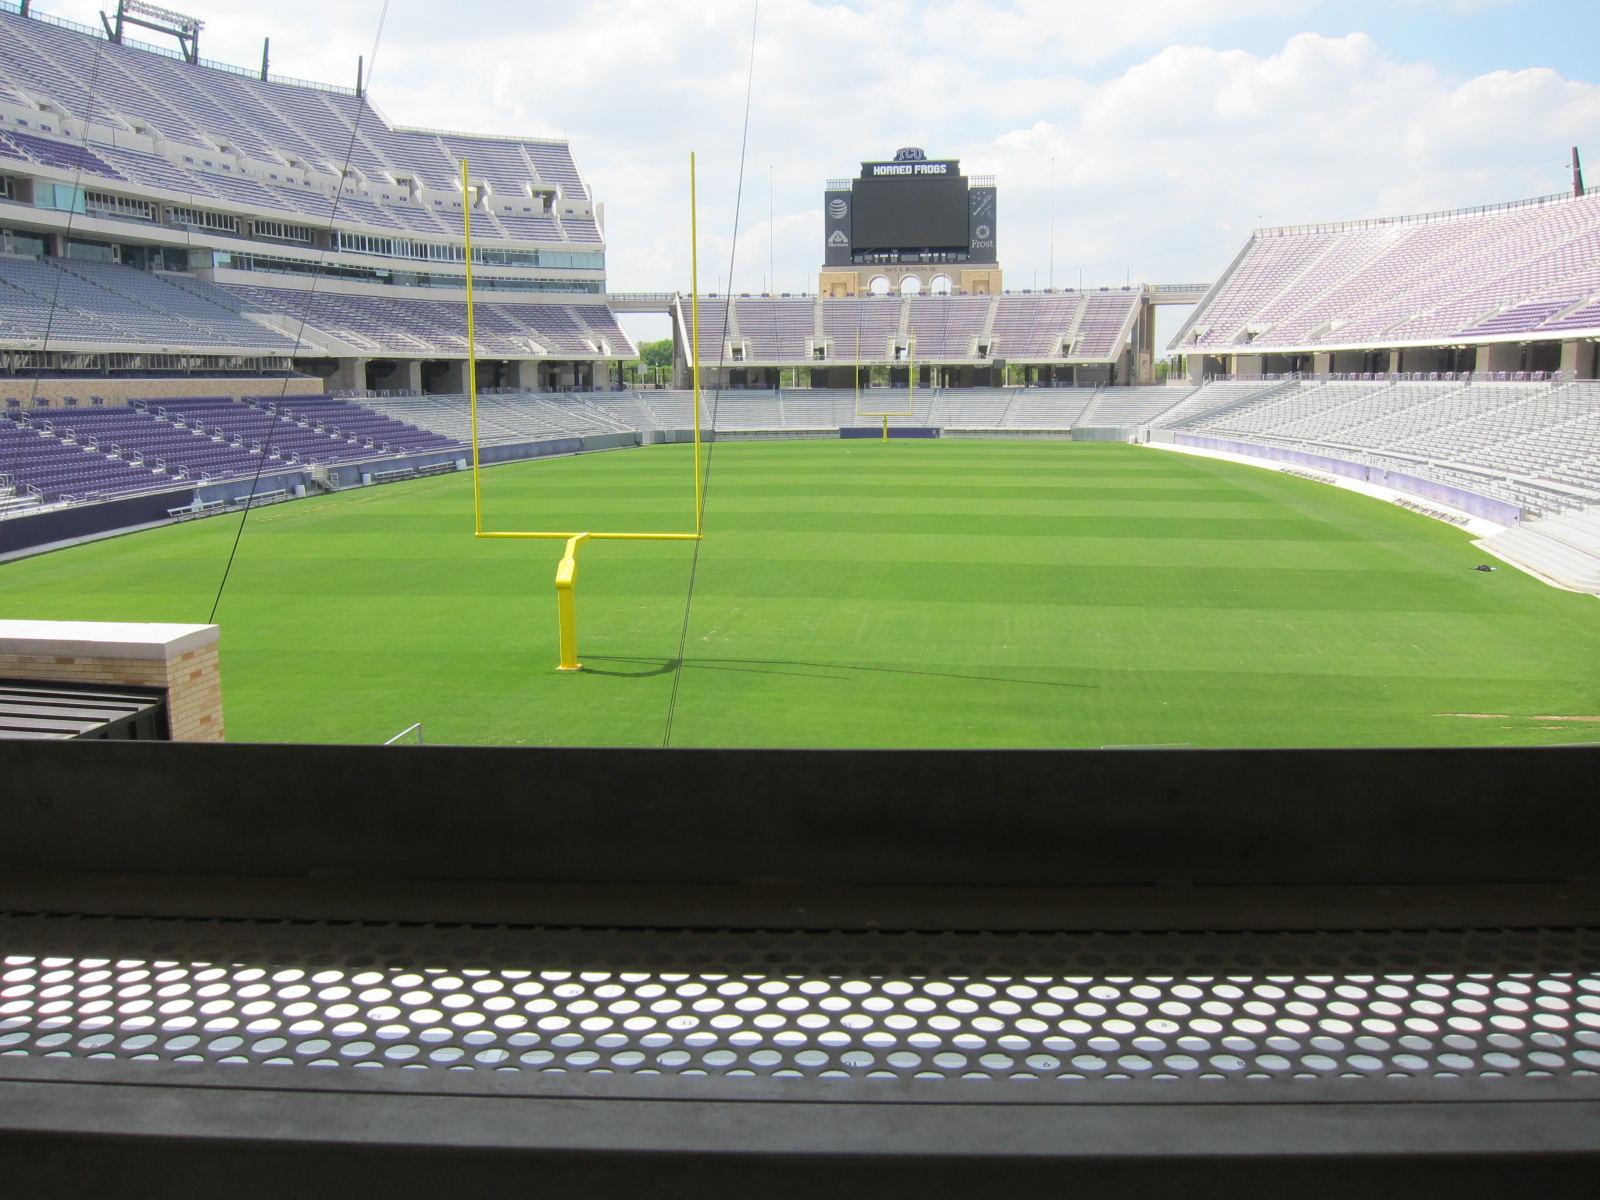 Field view from the South Endzone standing room area at Amon Carter Stadium